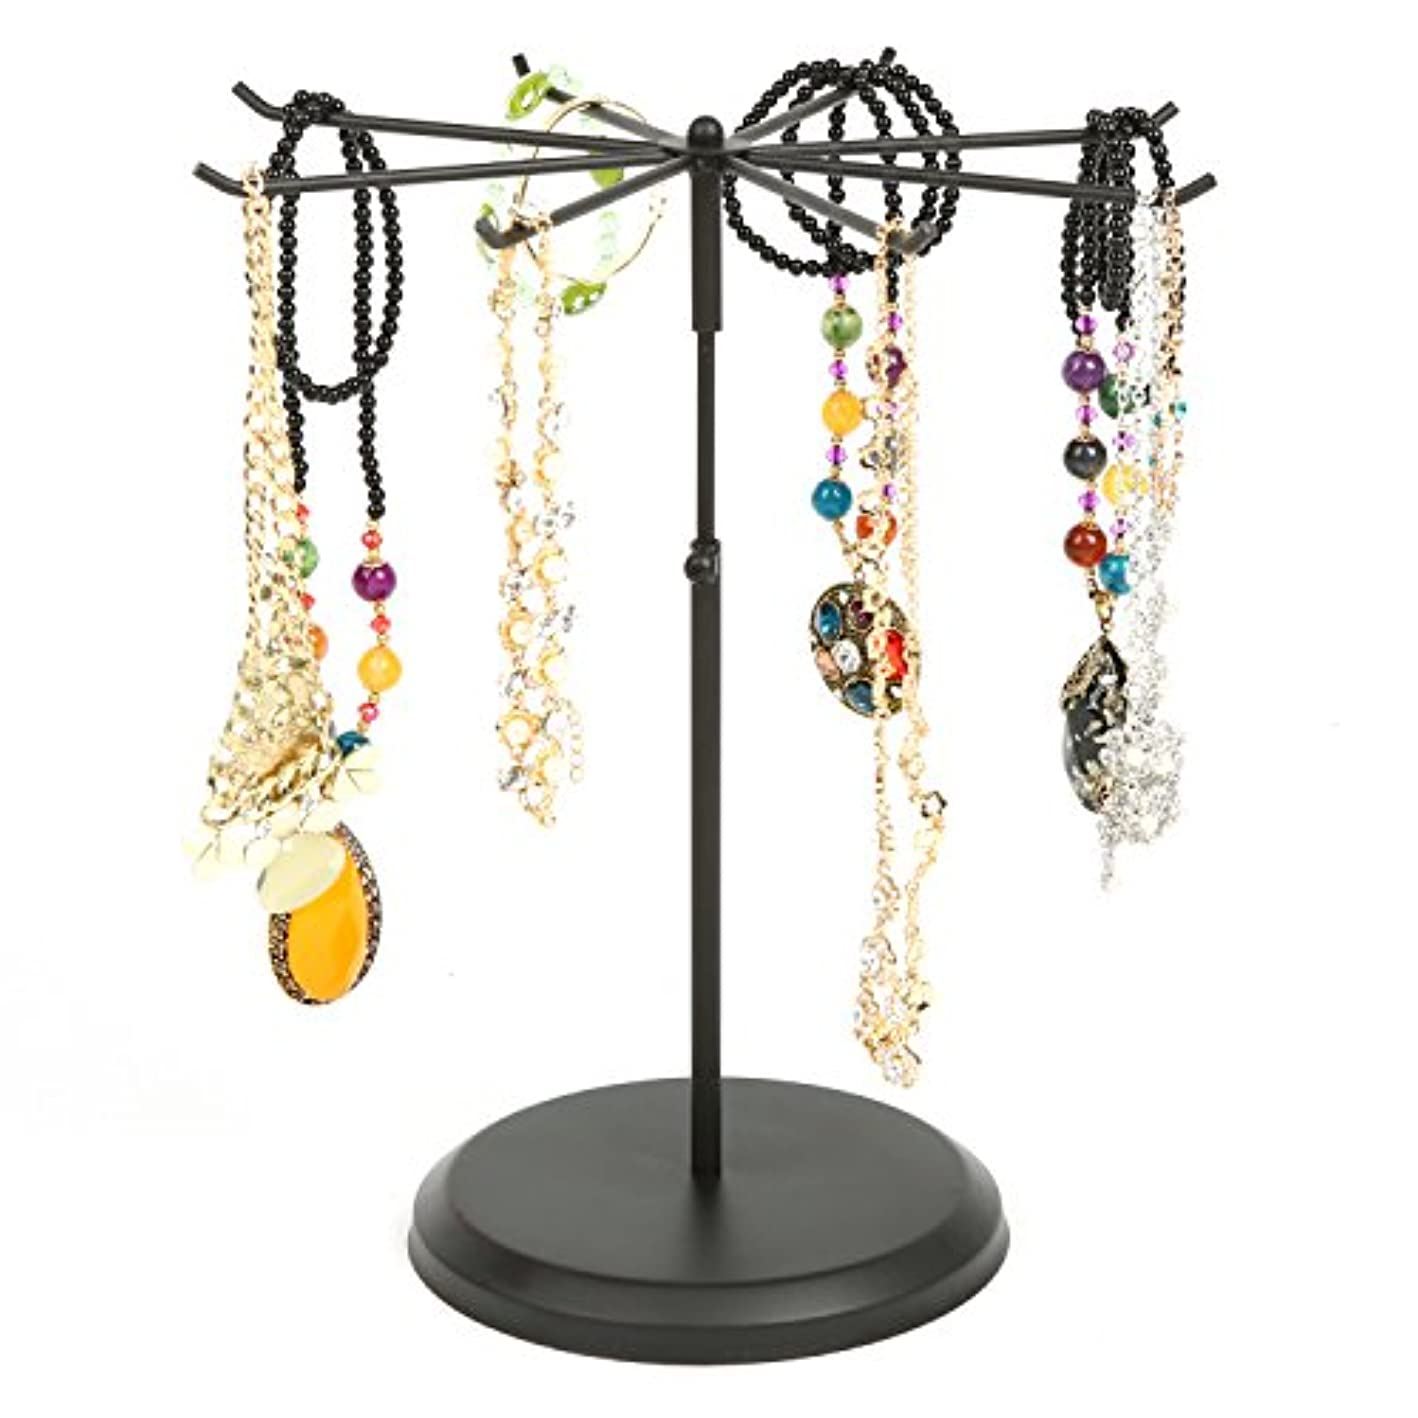 MyGift Black Metal Rotating 8 Hook Necklace & Bracelet Organizer/Countertop Jewelry Tower Display Stand